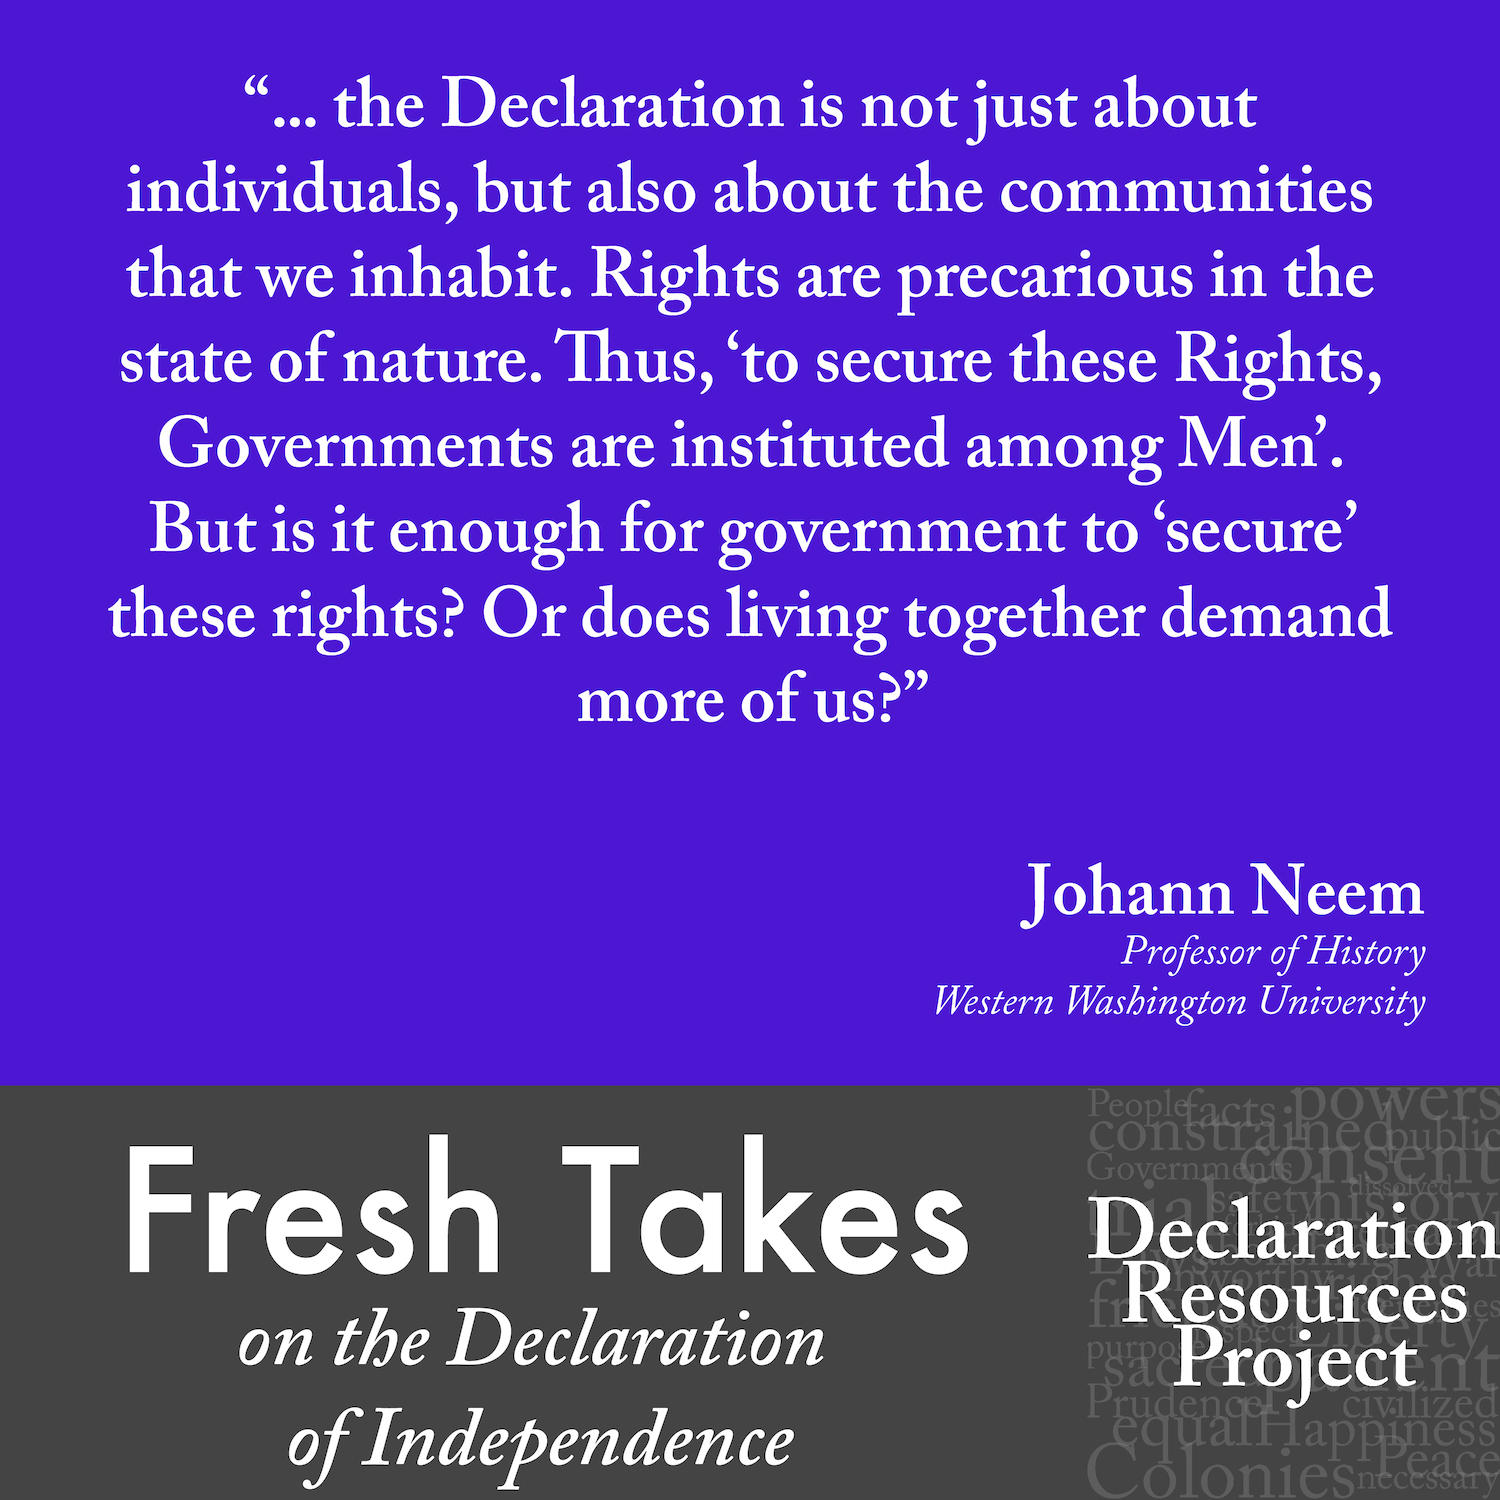 Johann Neem's Fresh Take on the Declaration of Independence